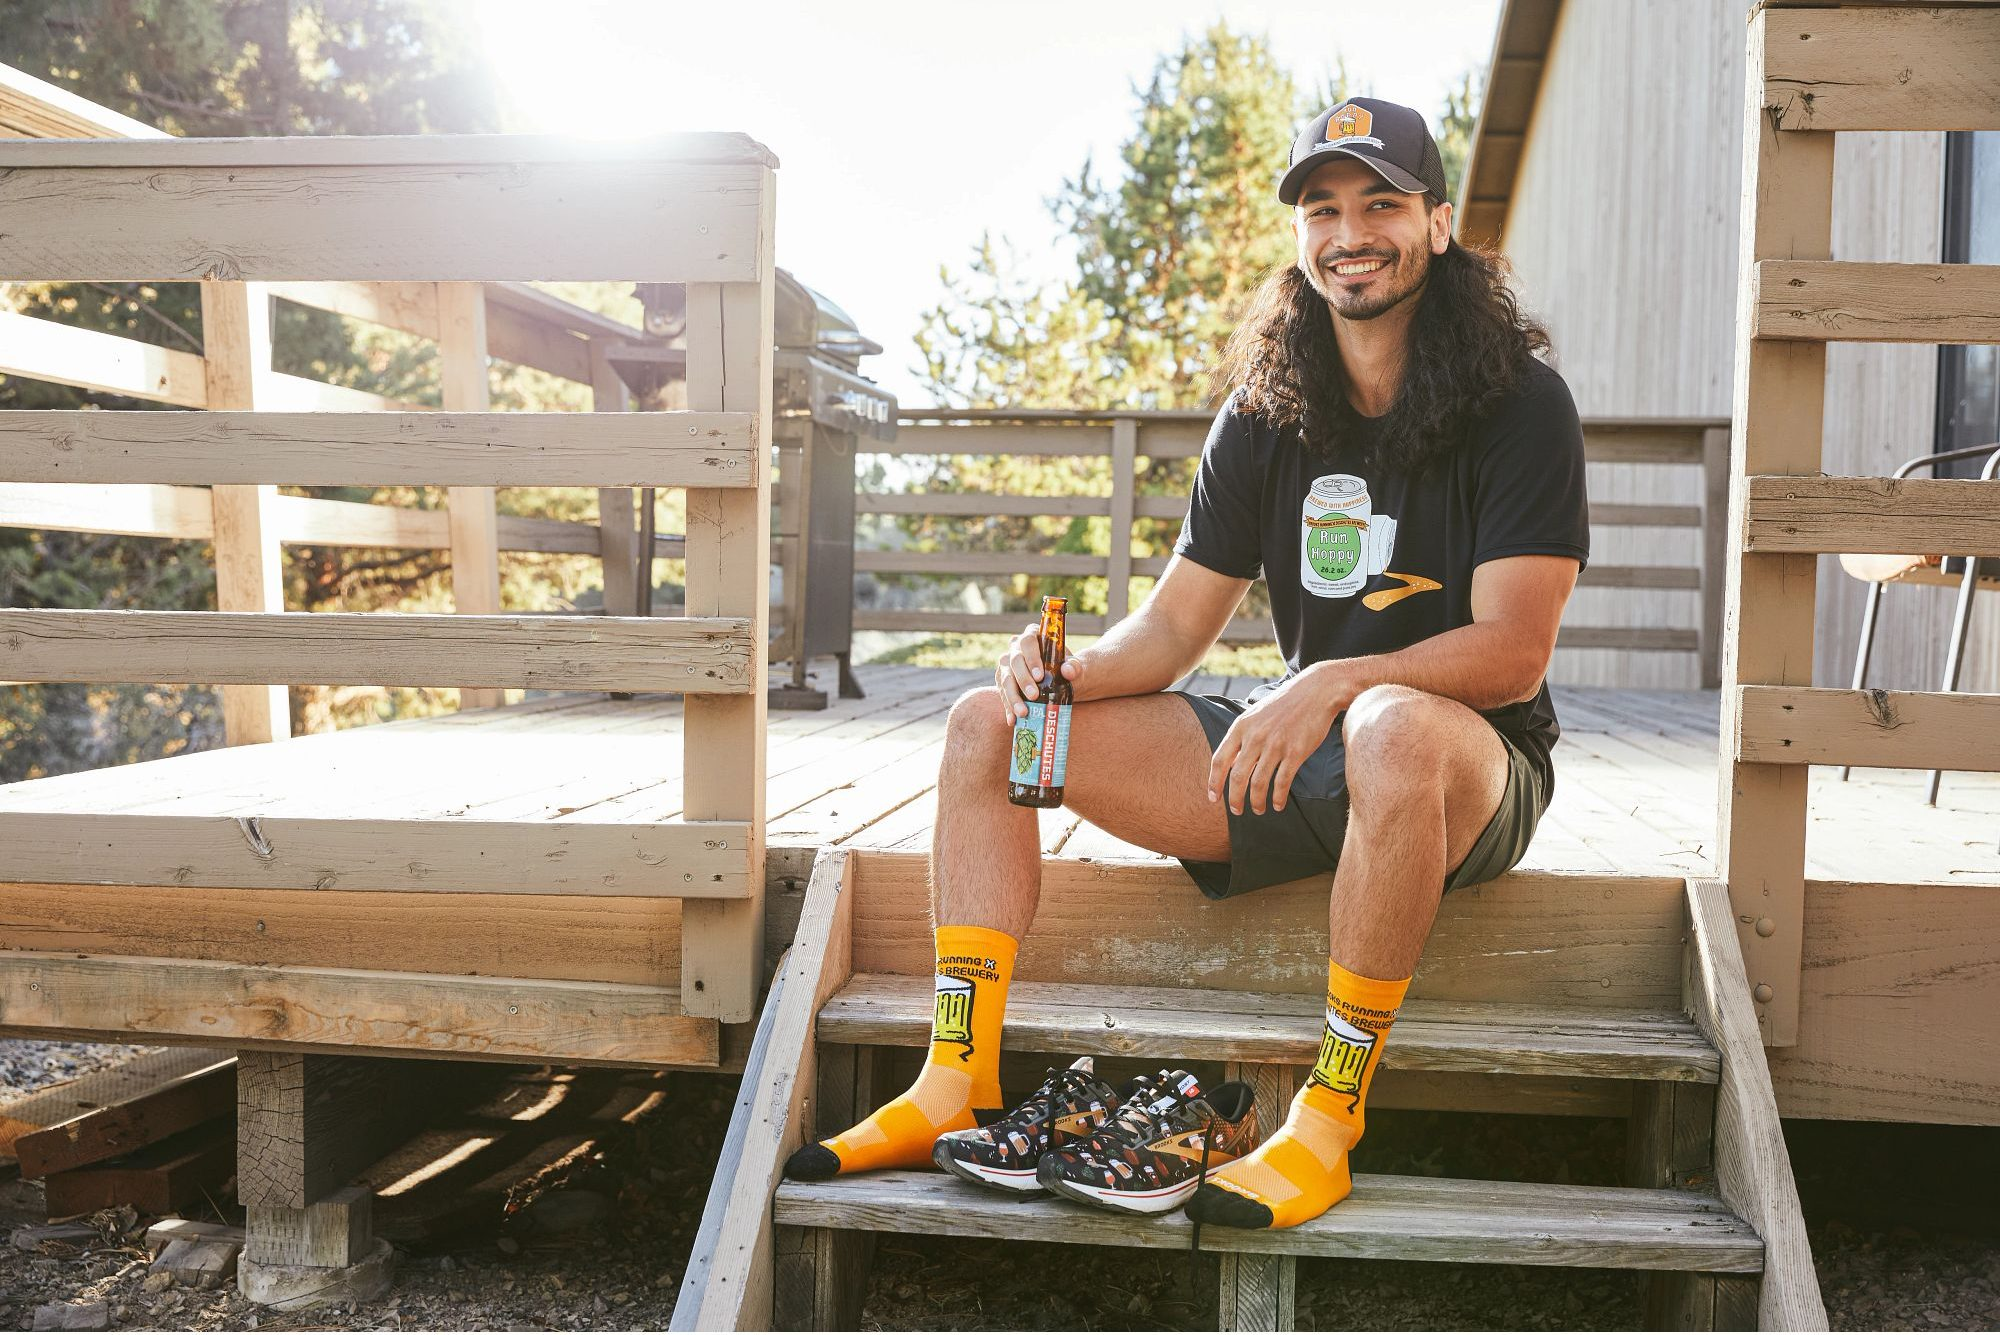 Some of the Deschutes Brewery and Brooks Running Deschutes themed Run Hoppy apparel. (image courtesy of Brooks Running)